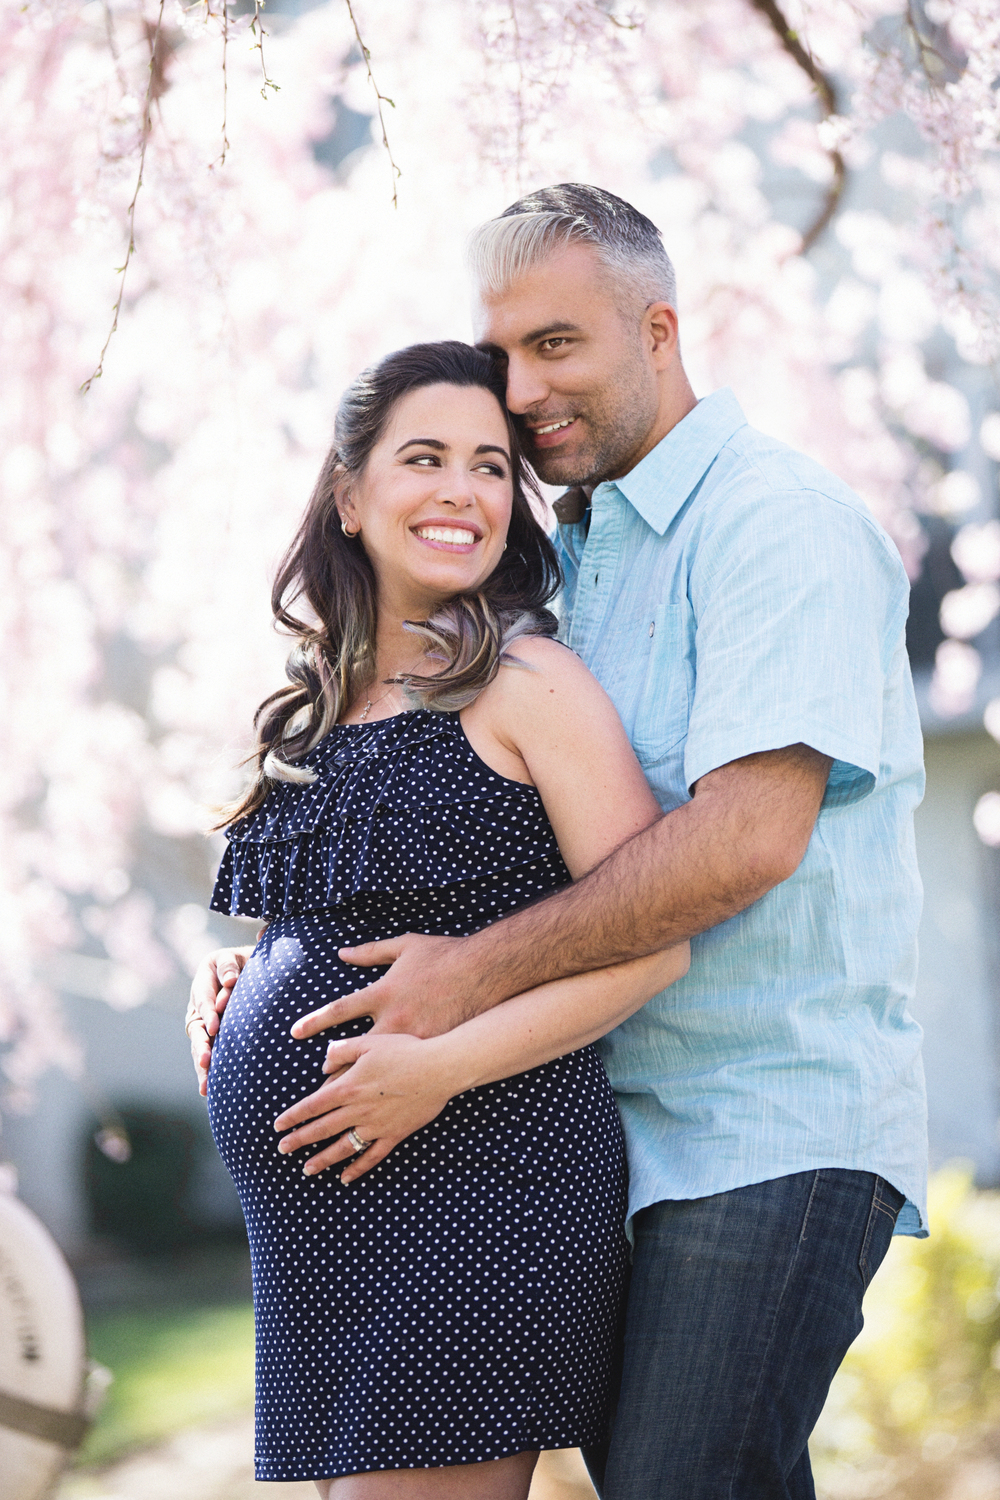 My Beautiful Client at her Maternity Session at alimondfamily.com